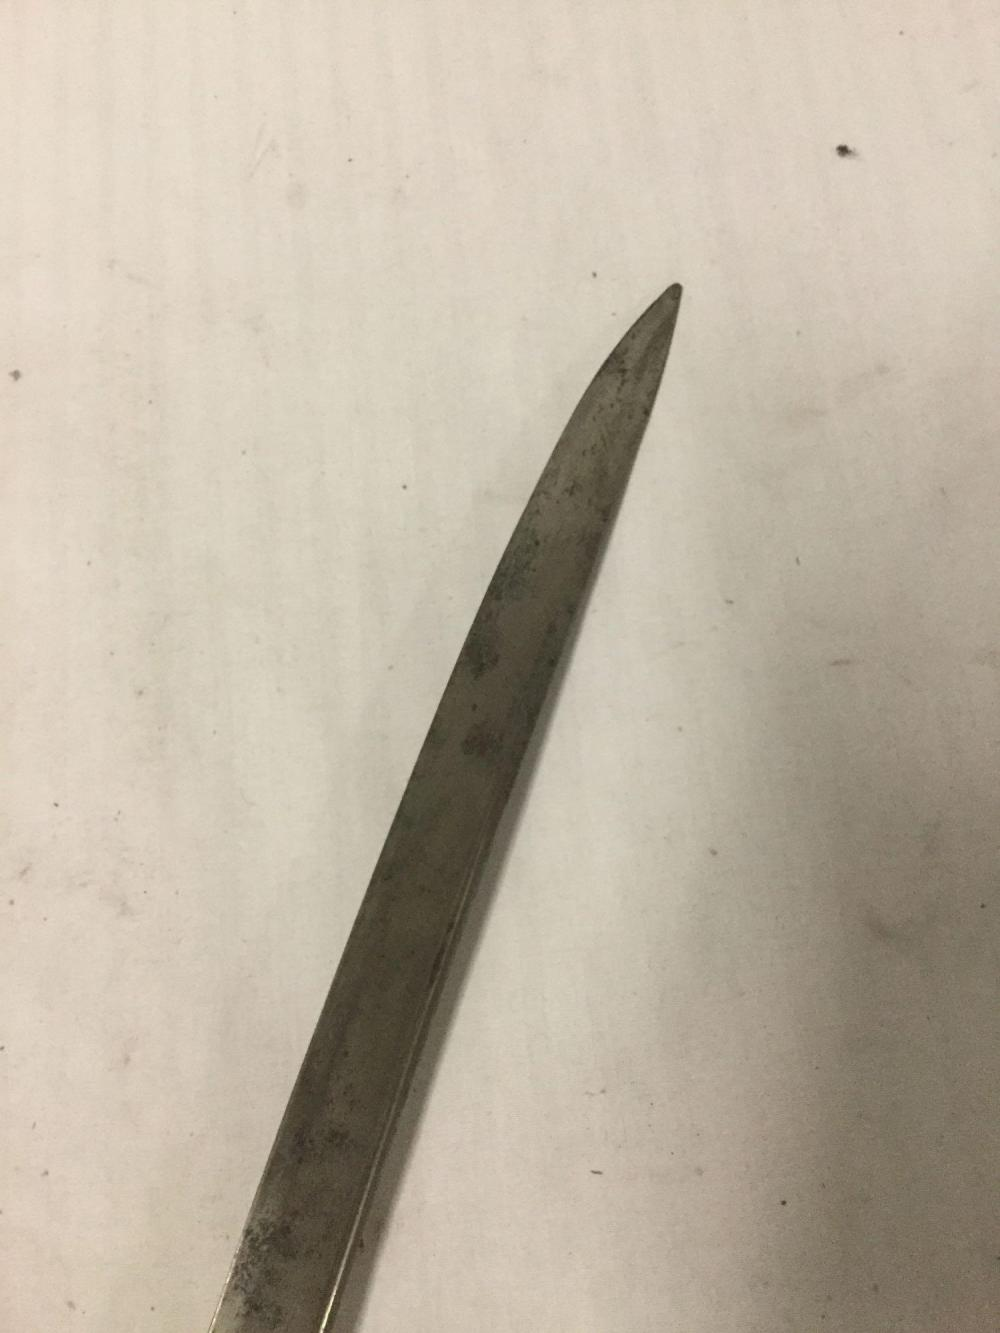 Lot 81: Antique 1850 Spanish Real Toledo Steel NCO Sword. Part of the hilt has separated